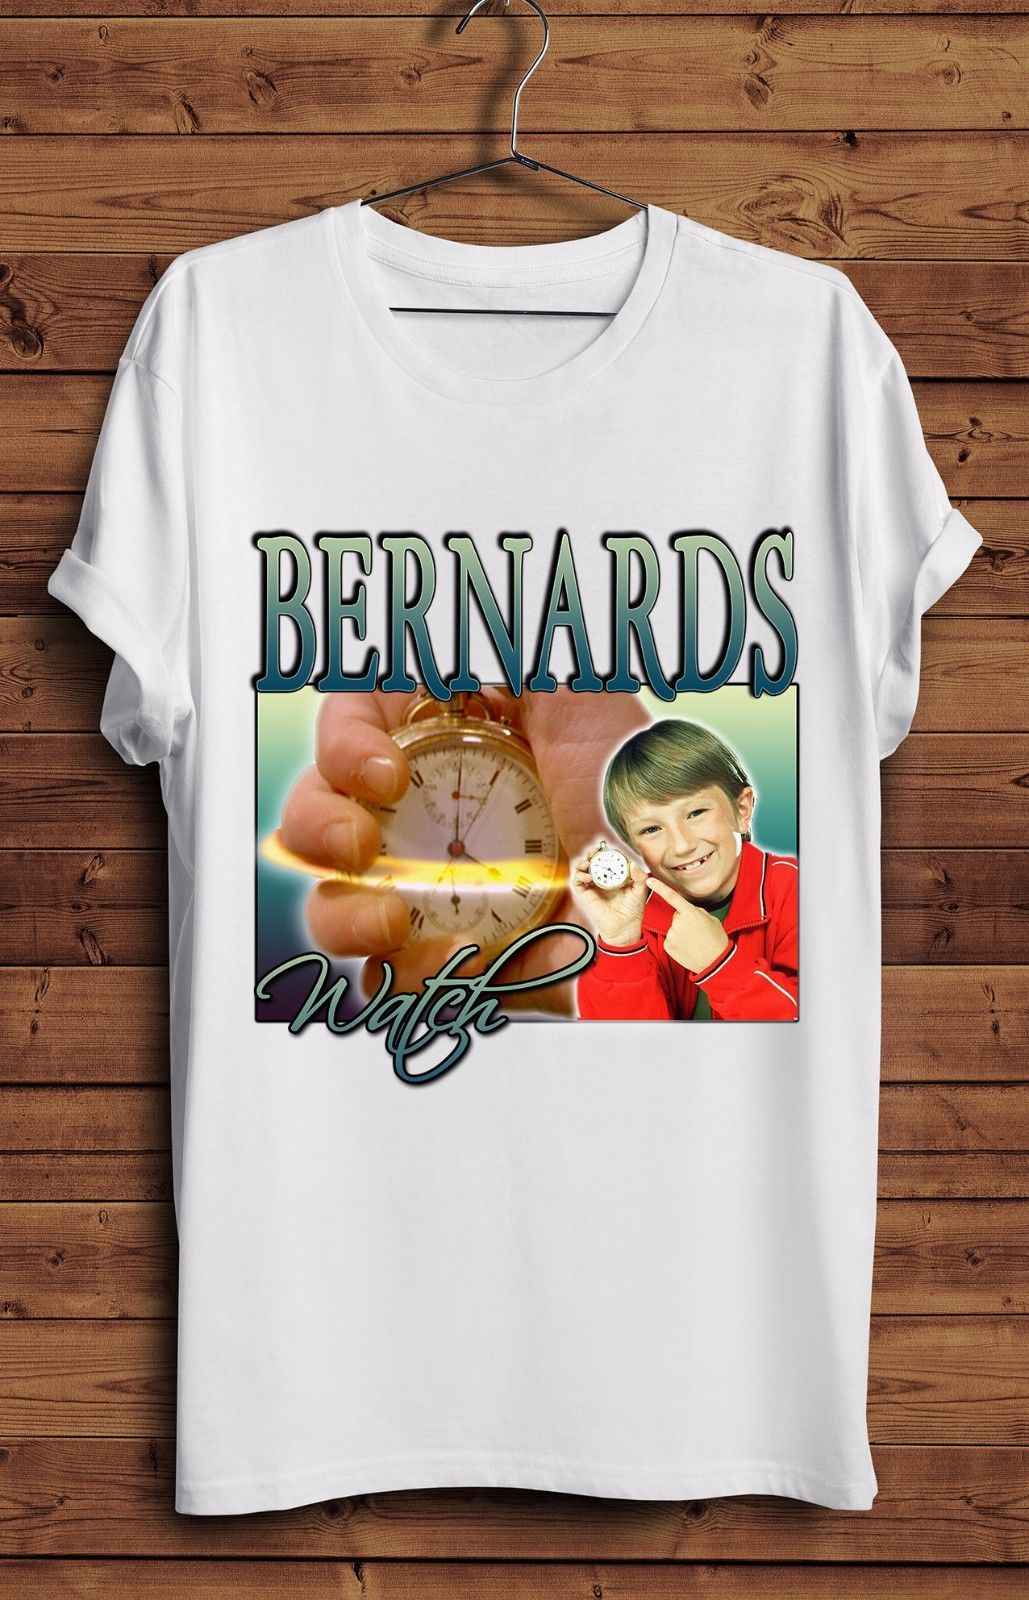 Bernards Watch T Shirt Vintage Funny Homage 90s TV Show Retro CBBC Time image